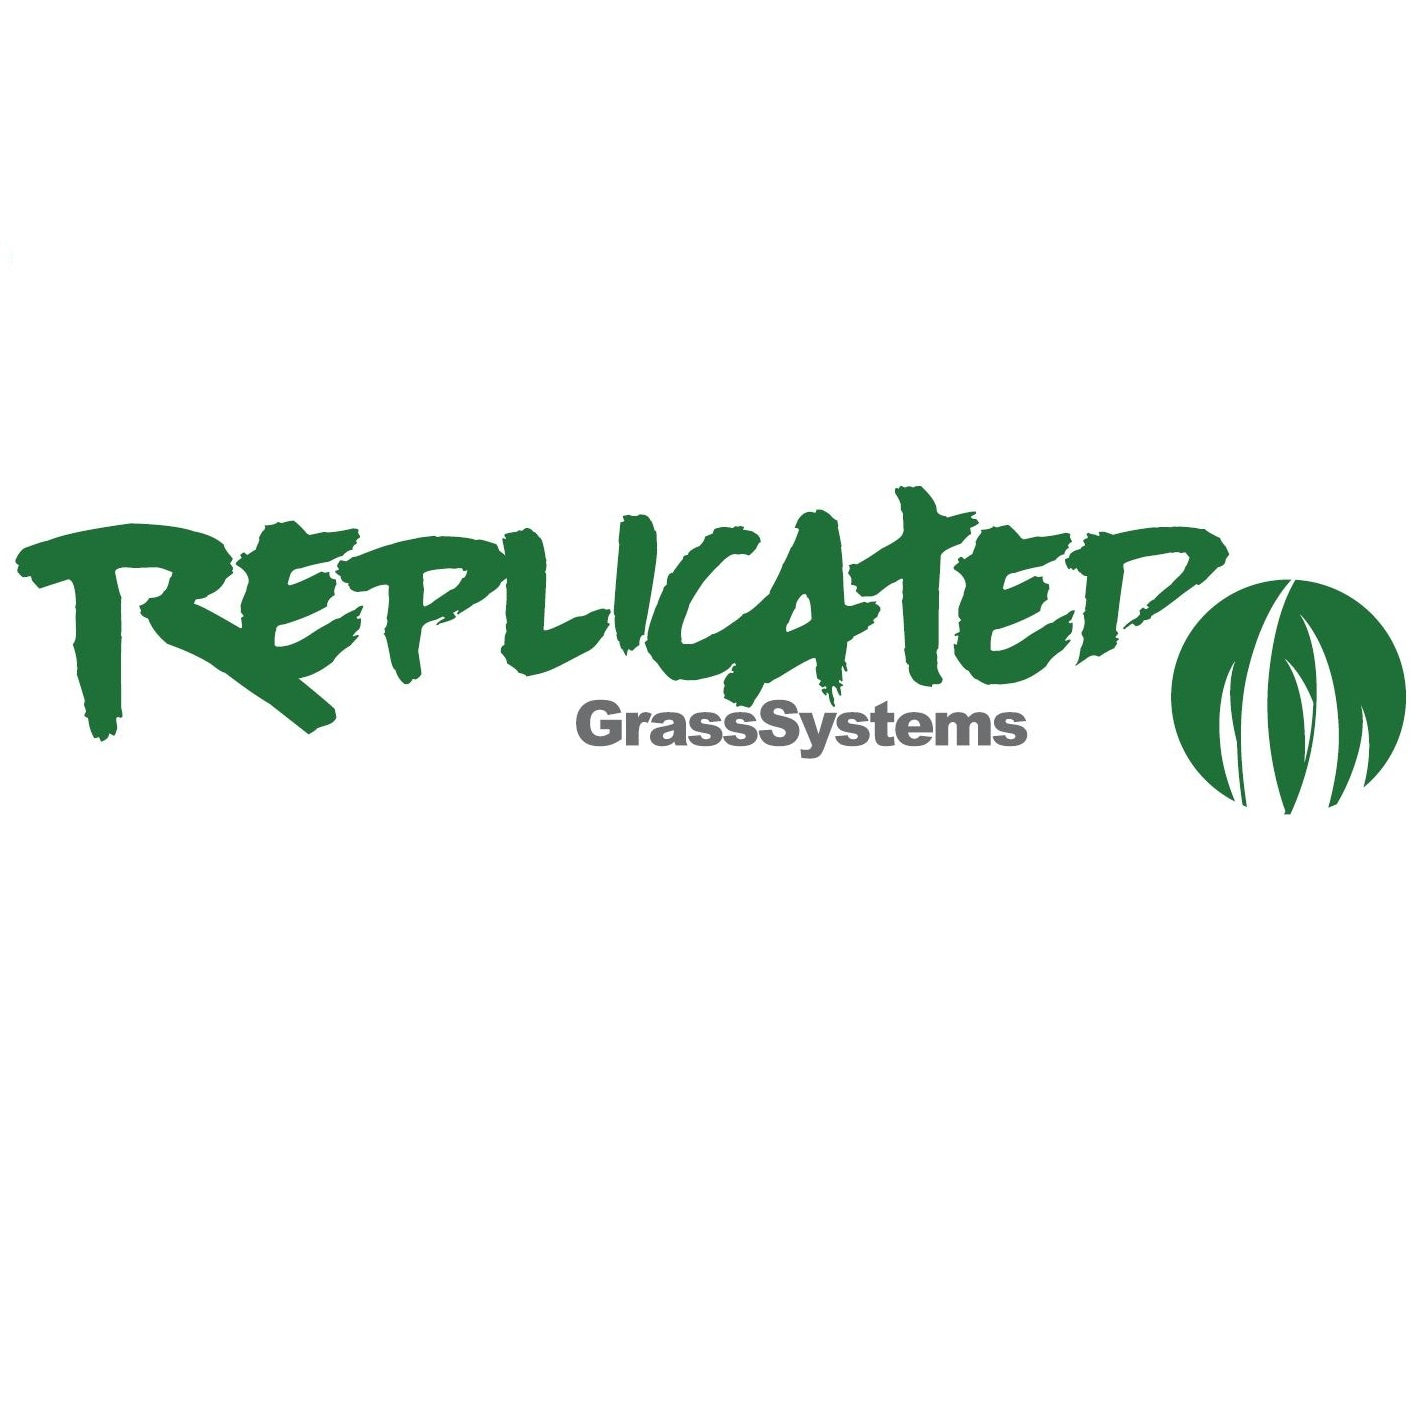 Replicated Grass Systems